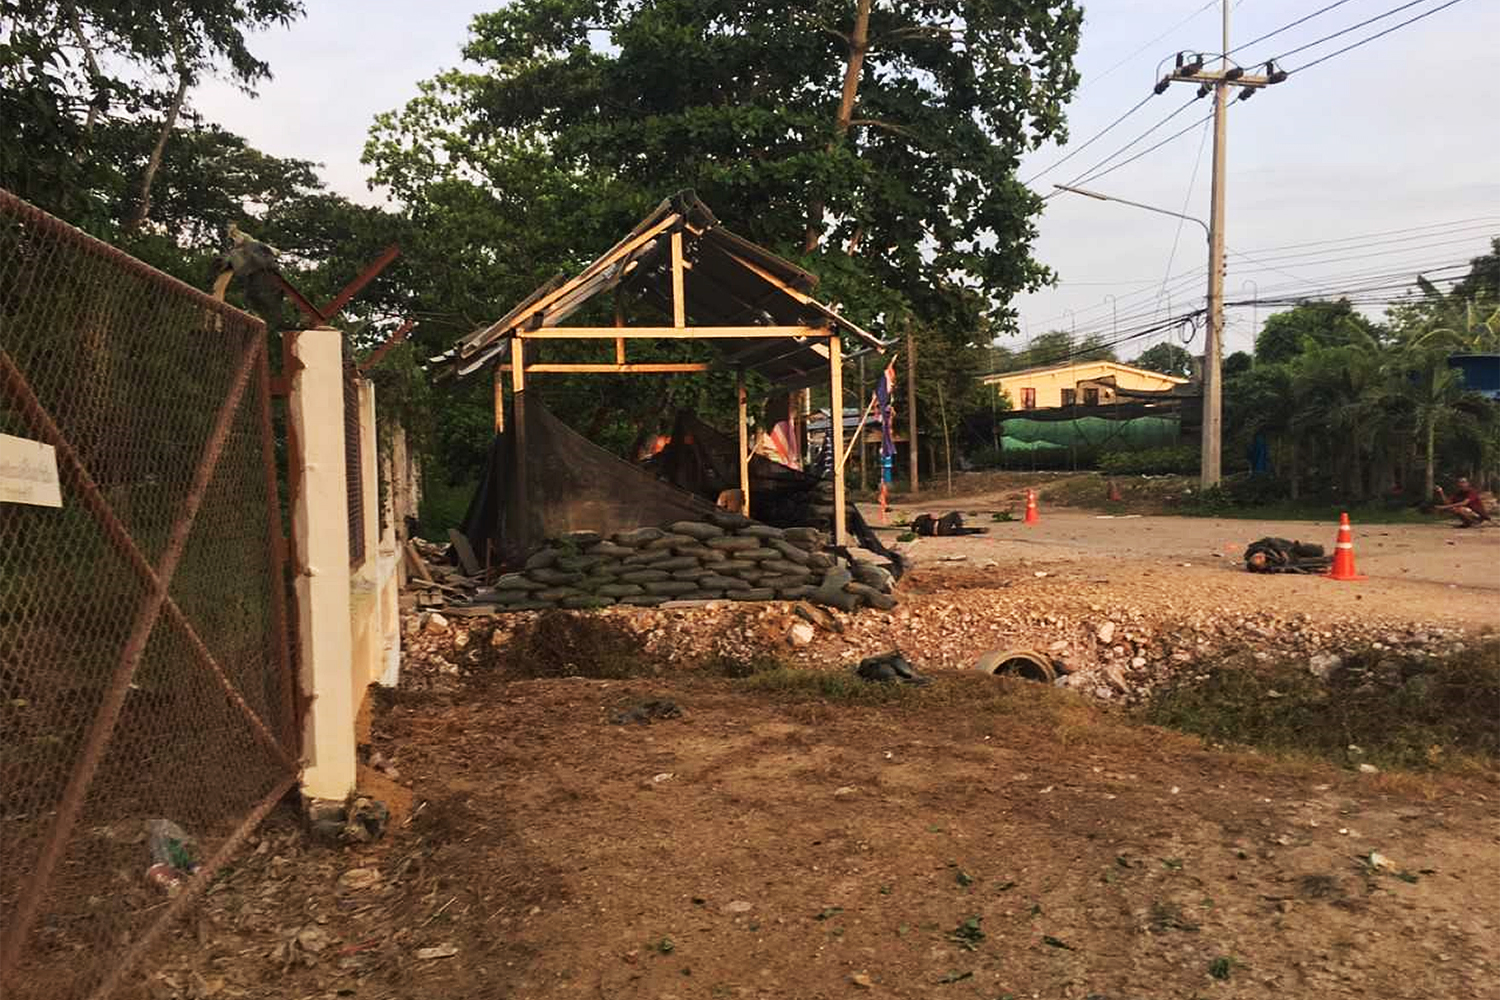 A policeman was killed and four others were injured when a bomb placed in a bunker sandbag at the security booth was detonated in Chana district of Songkhla province on Sunday evening. (Photo by Assawin Pakkawan)